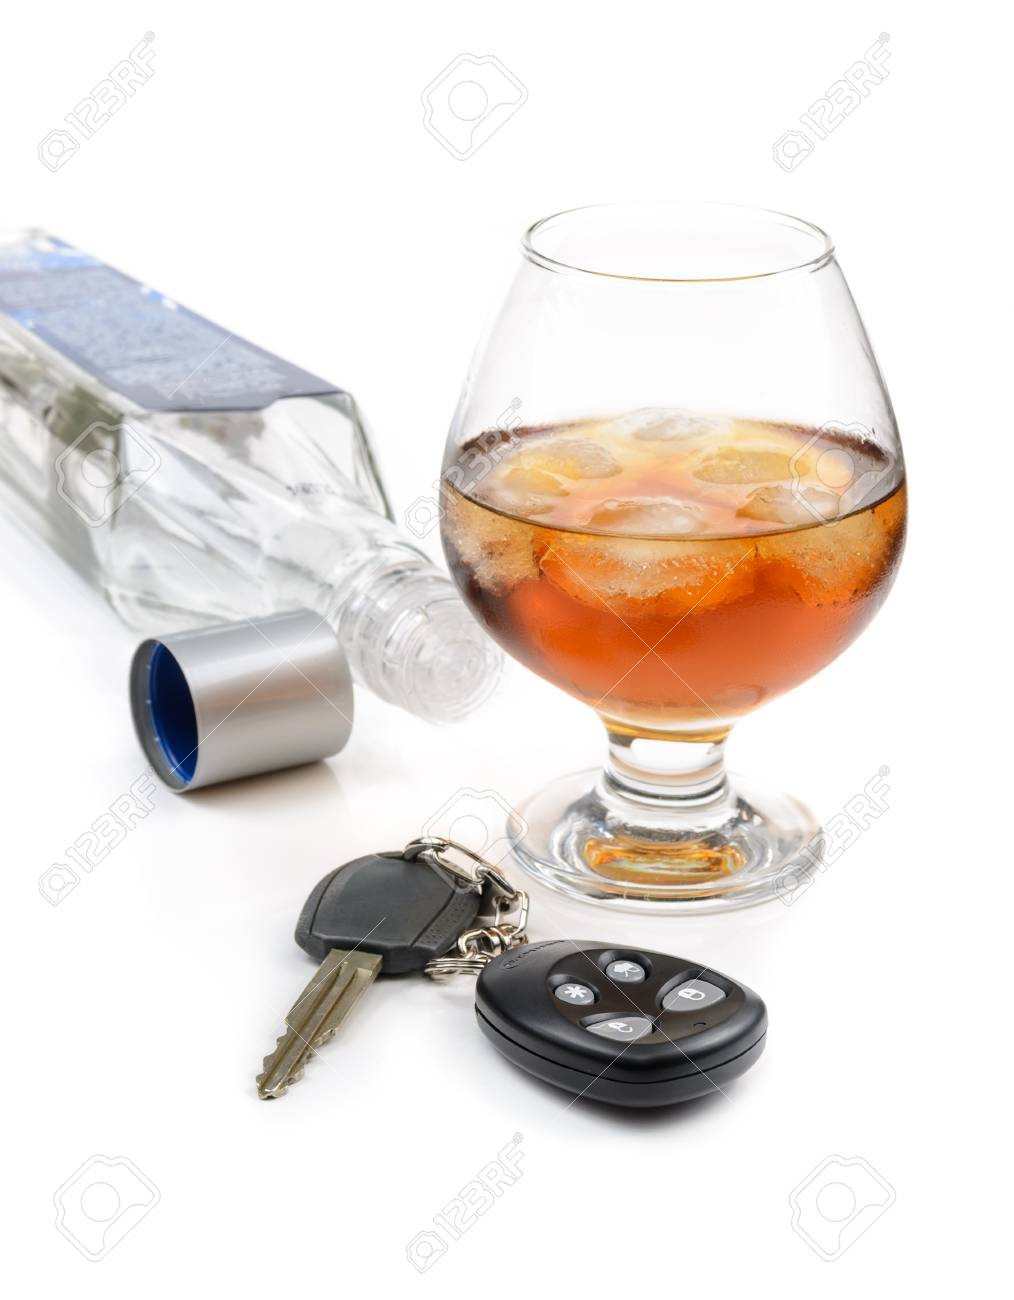 glass of alcohol and car keys. Photo isolated on white background Stock Photo - 17307878